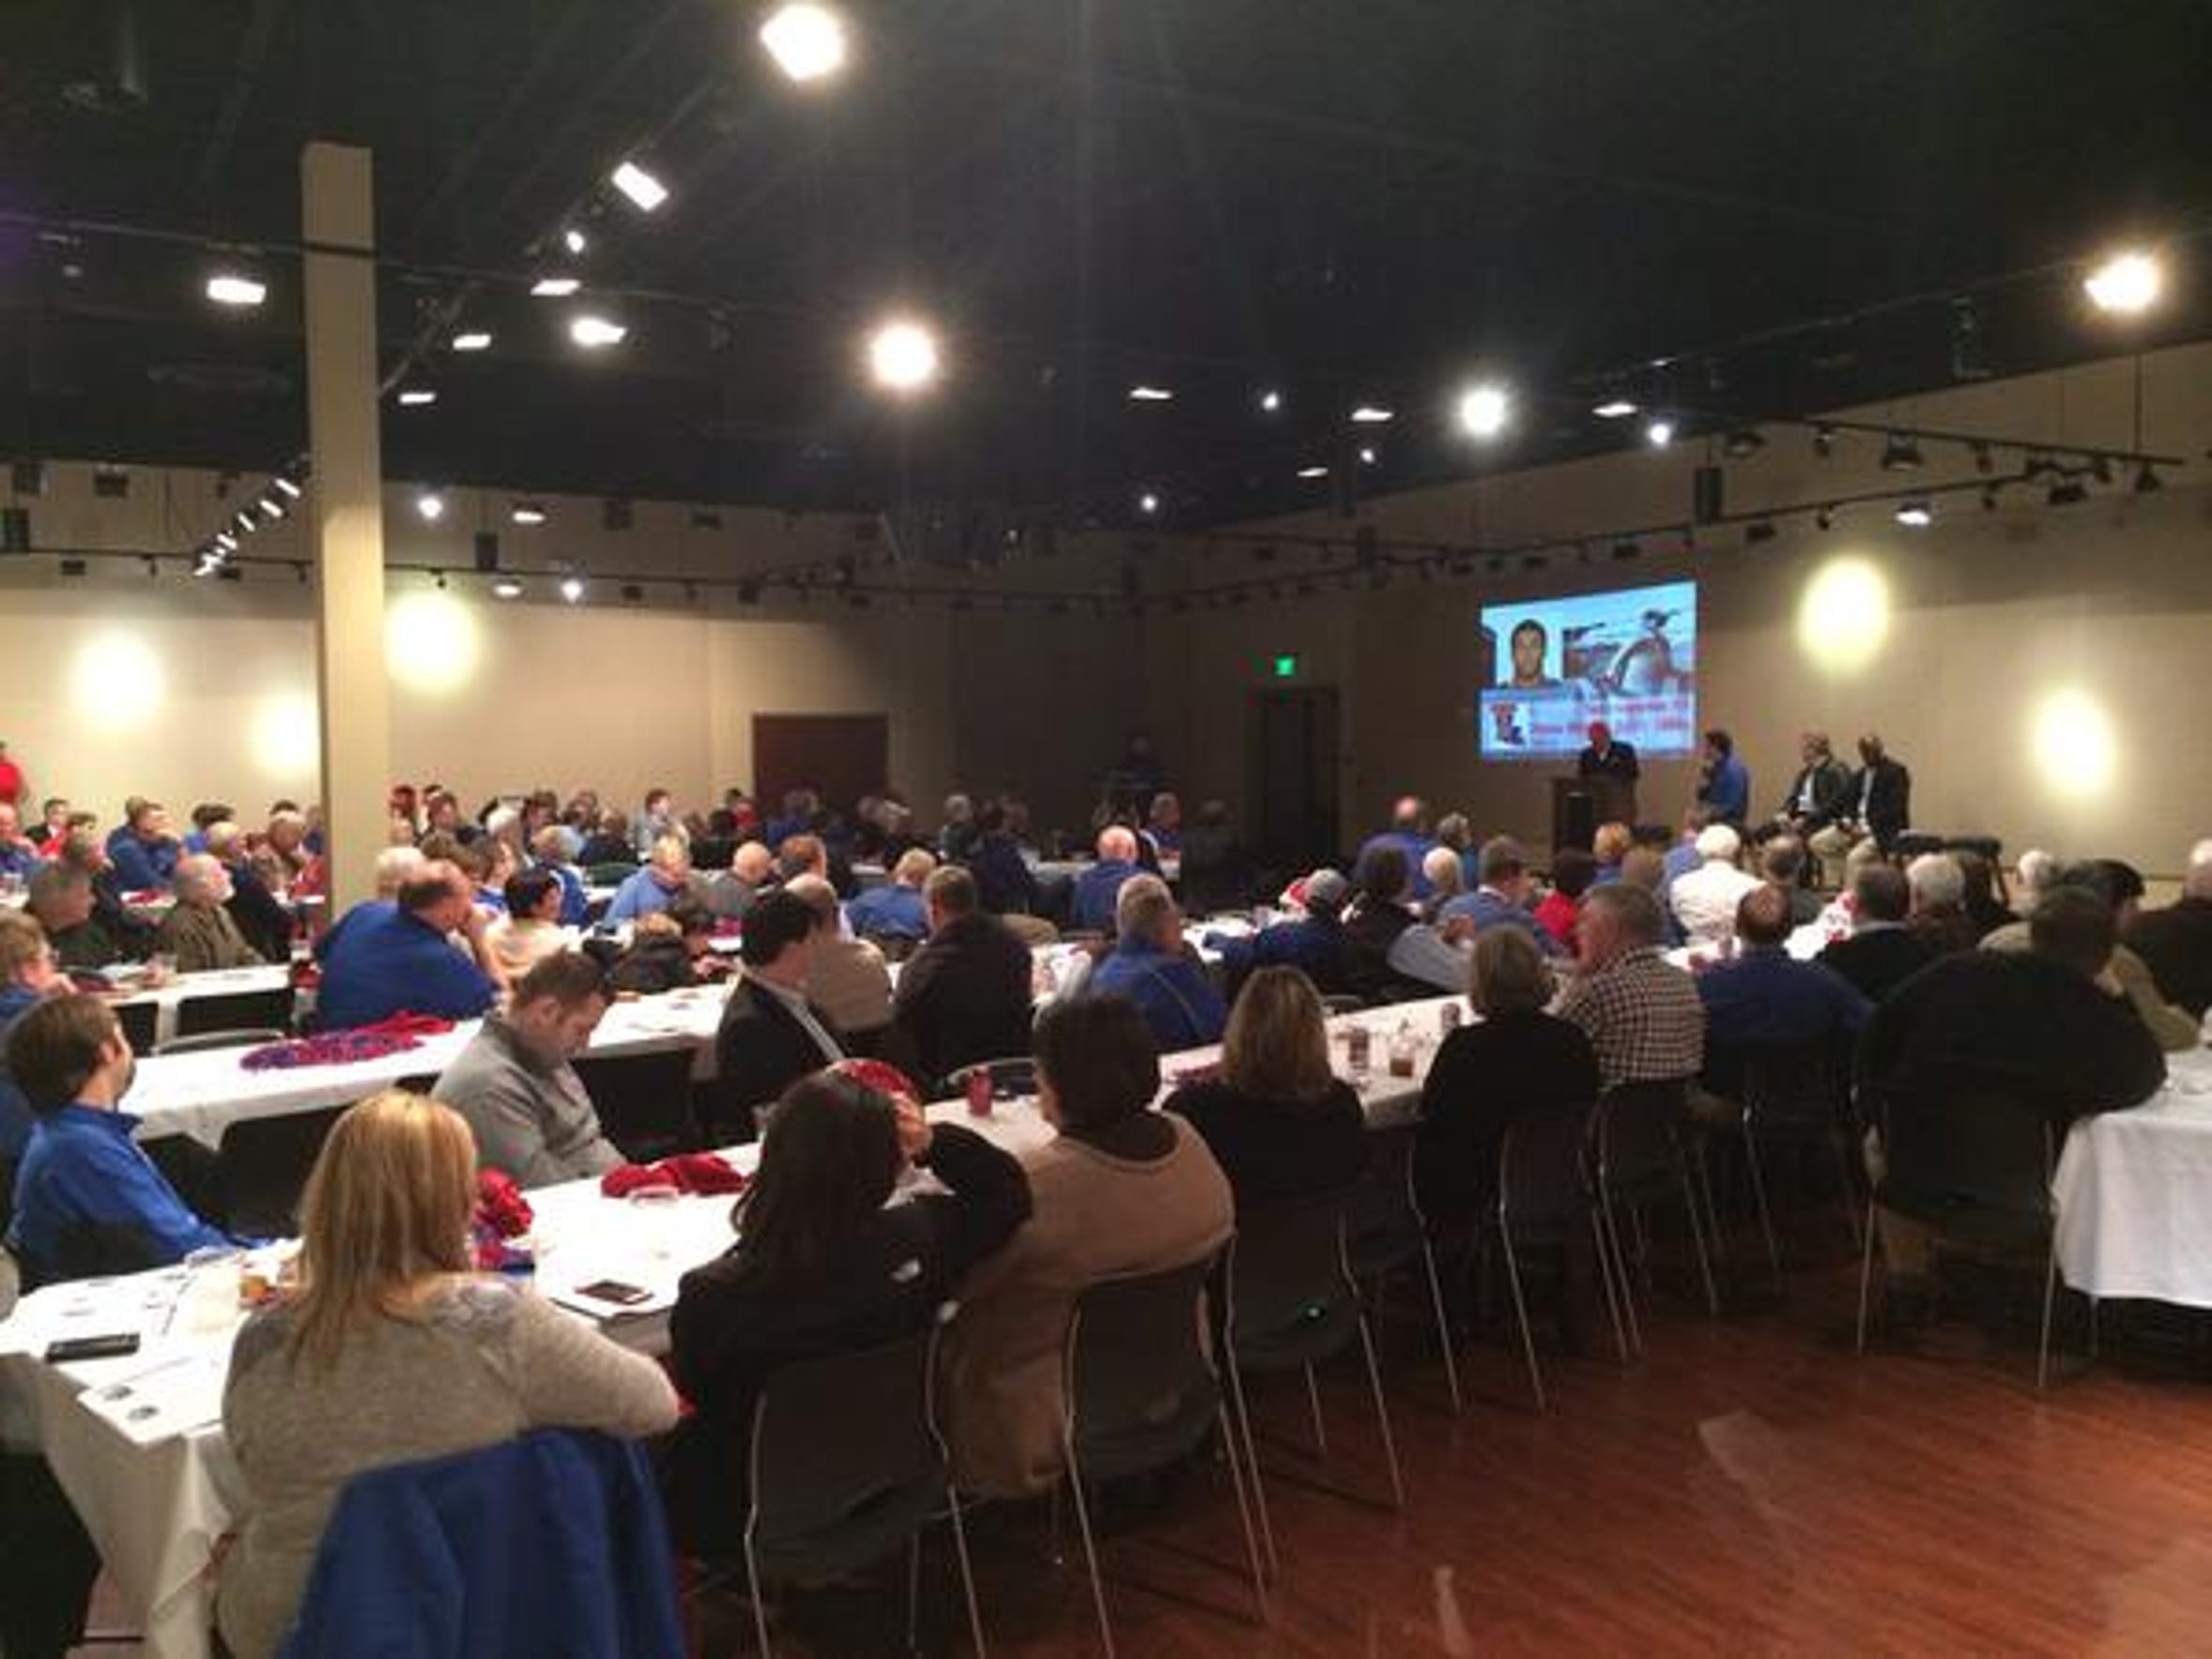 Louisiana Tech fans gather for Wednesday's Signing